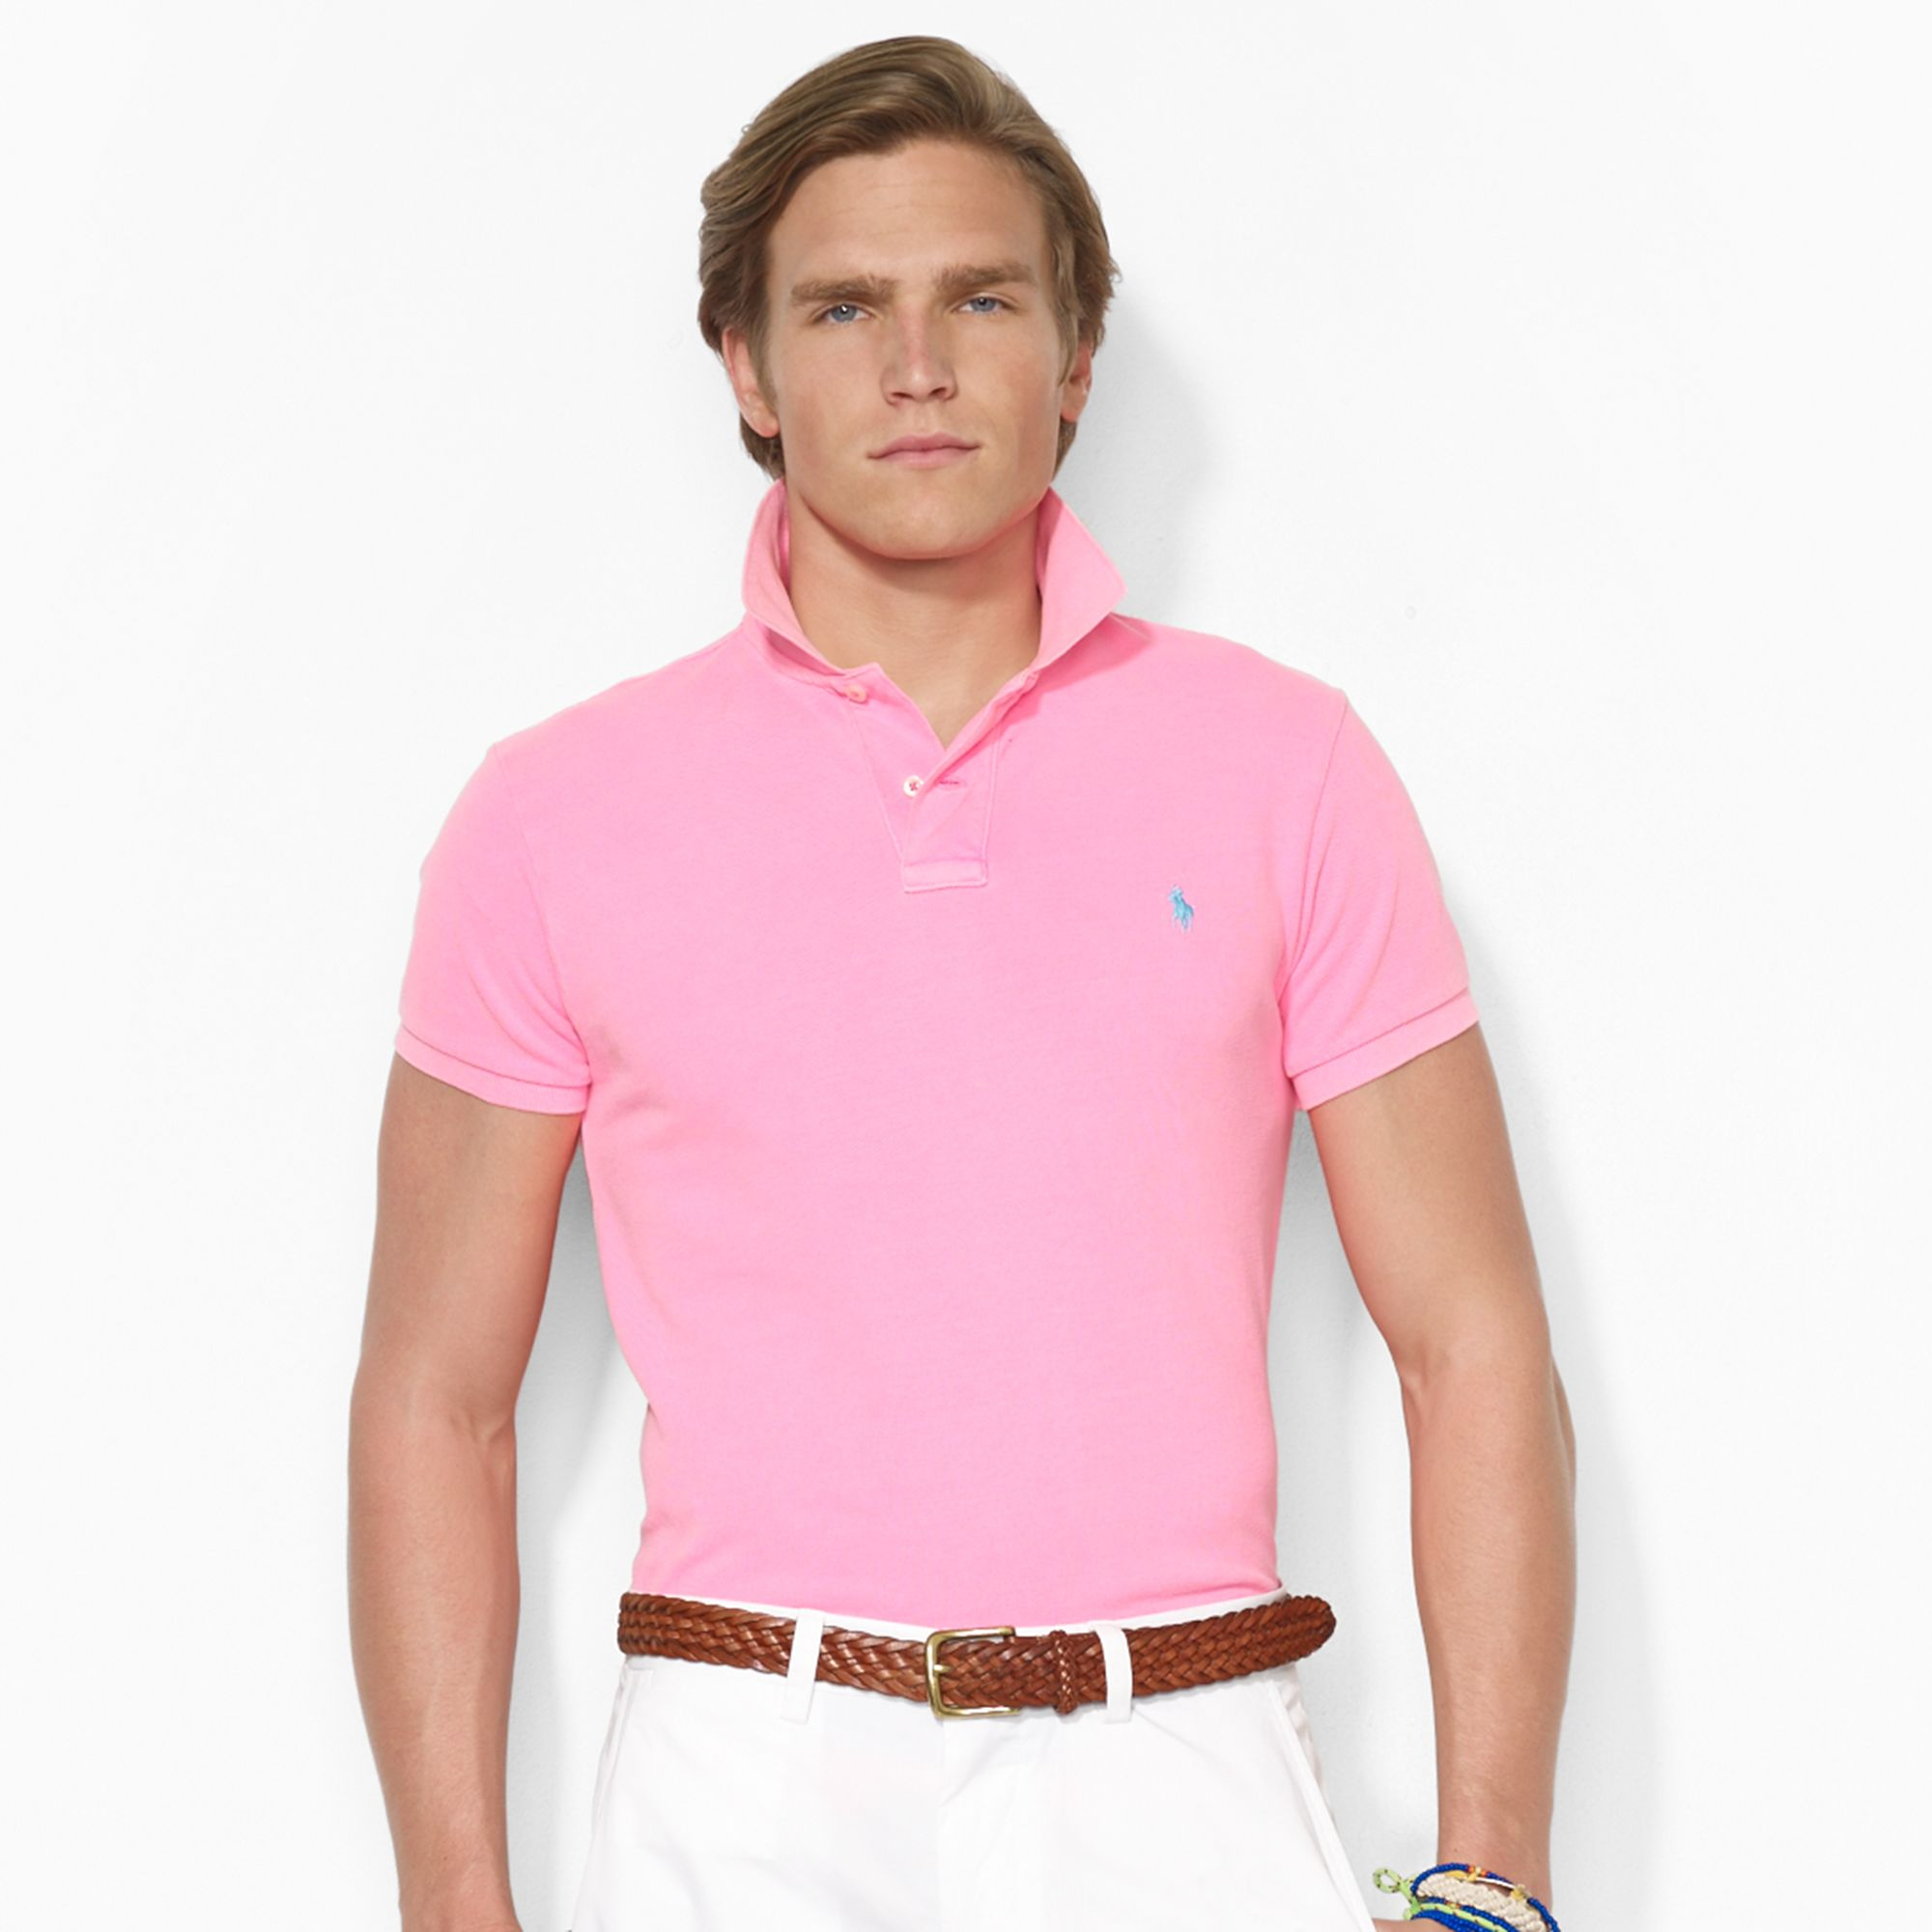 Polo ralph lauren custom neon mesh polo shirt in pink for for Man in polo shirt